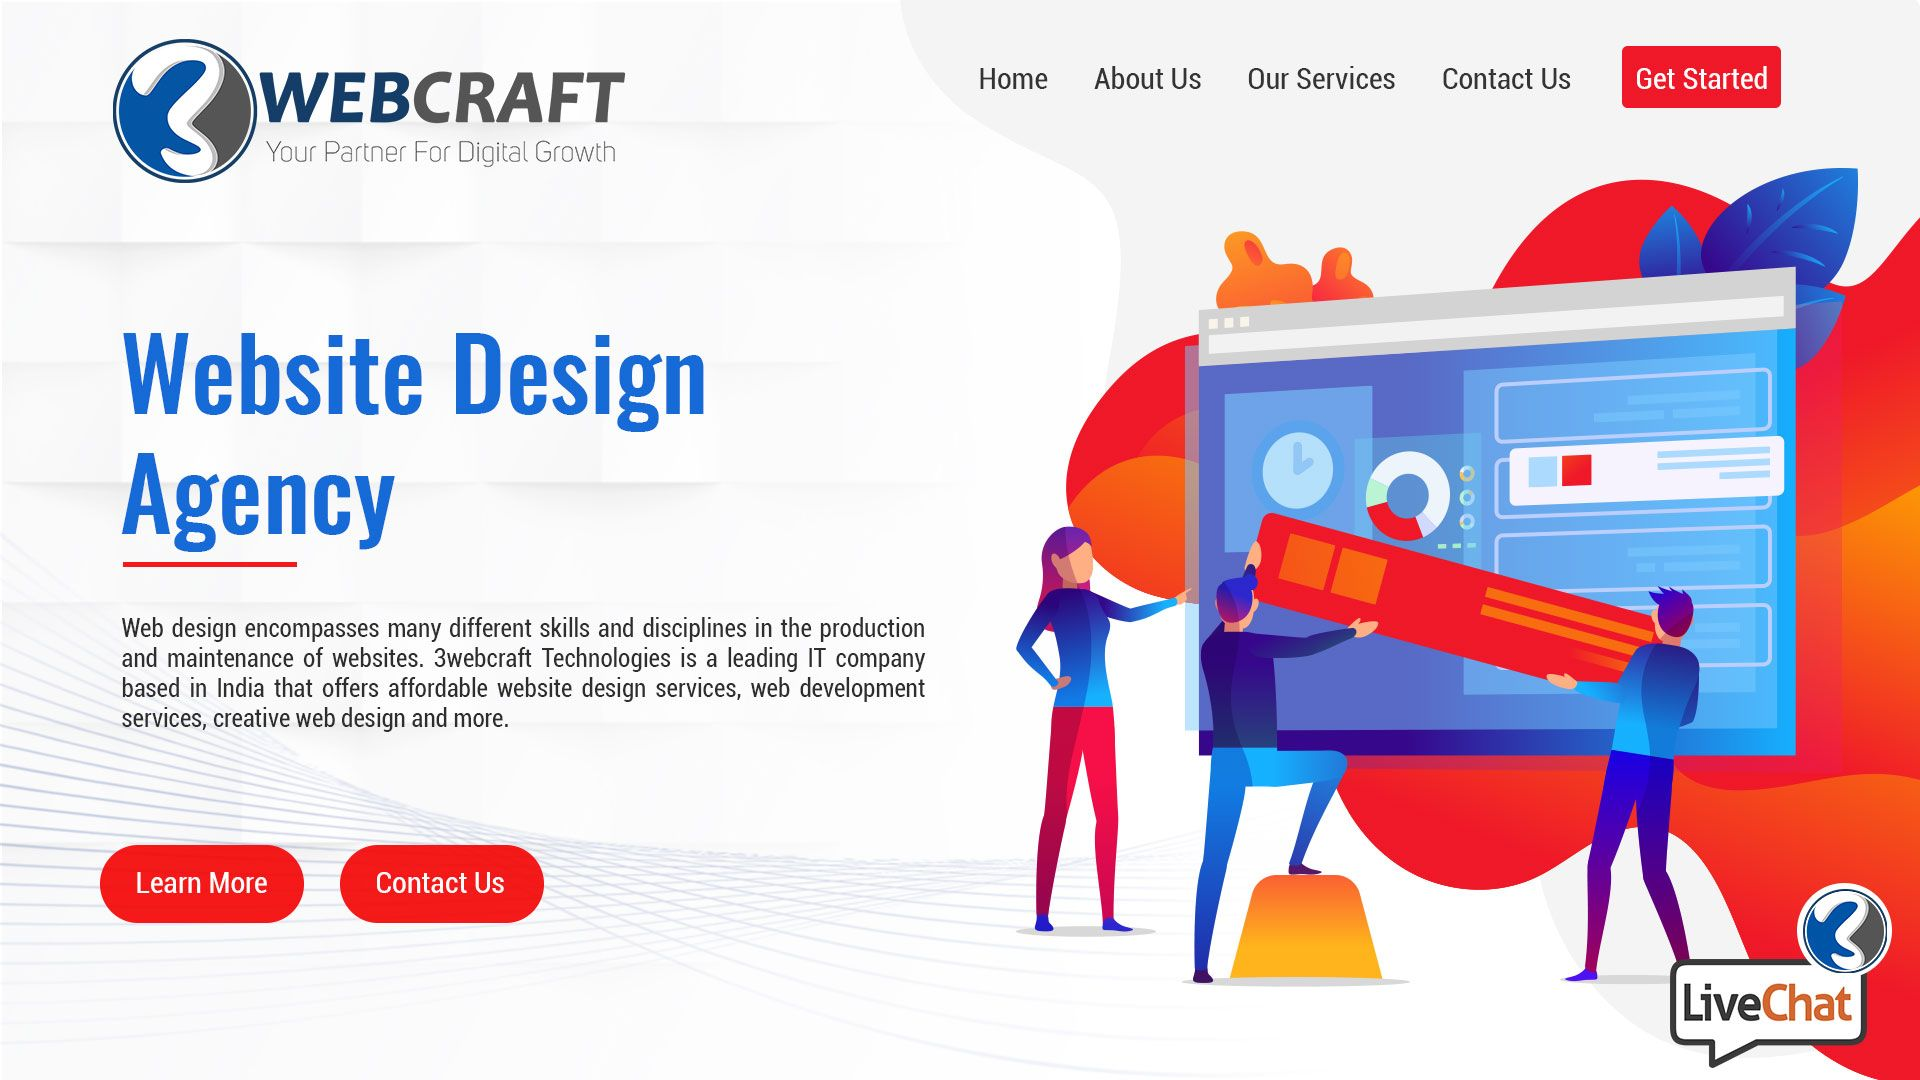 If You Are Looking For A Little Inspiration For The Next Website Design Of Your Business Web Design Agency Website Design Services Affordable Website Design